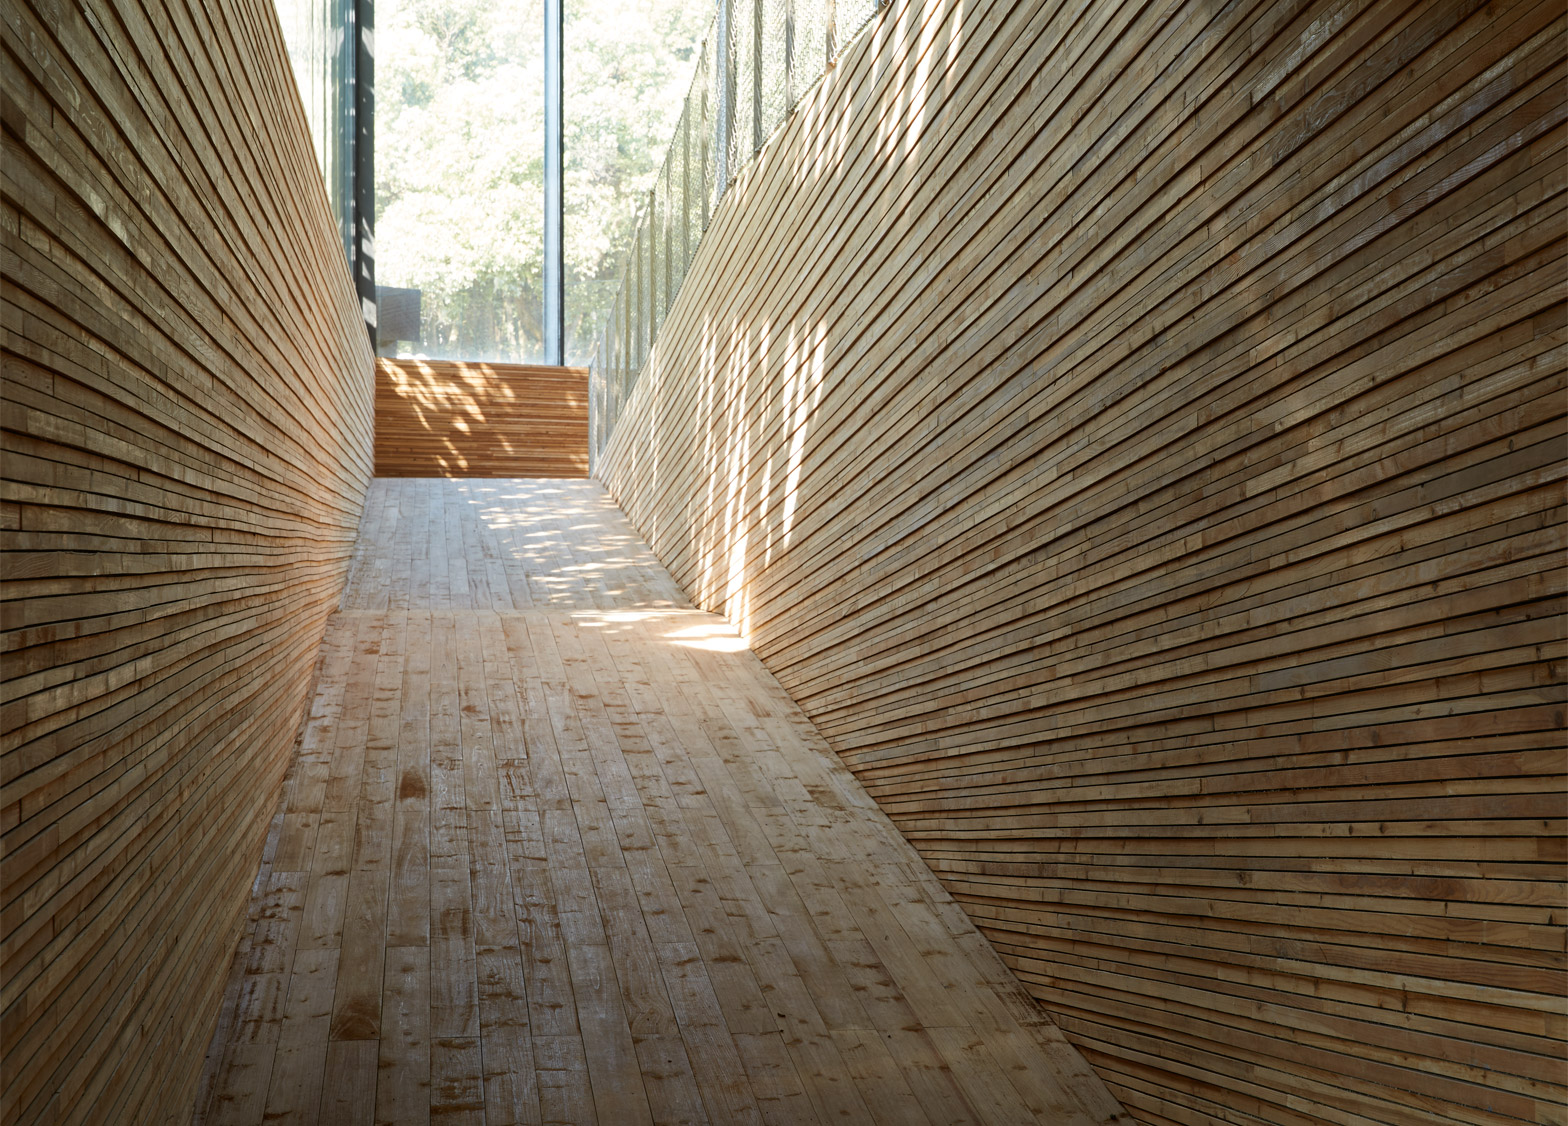 China Academy Arts by Kengo Kuma and photographed by Eiichi Kano